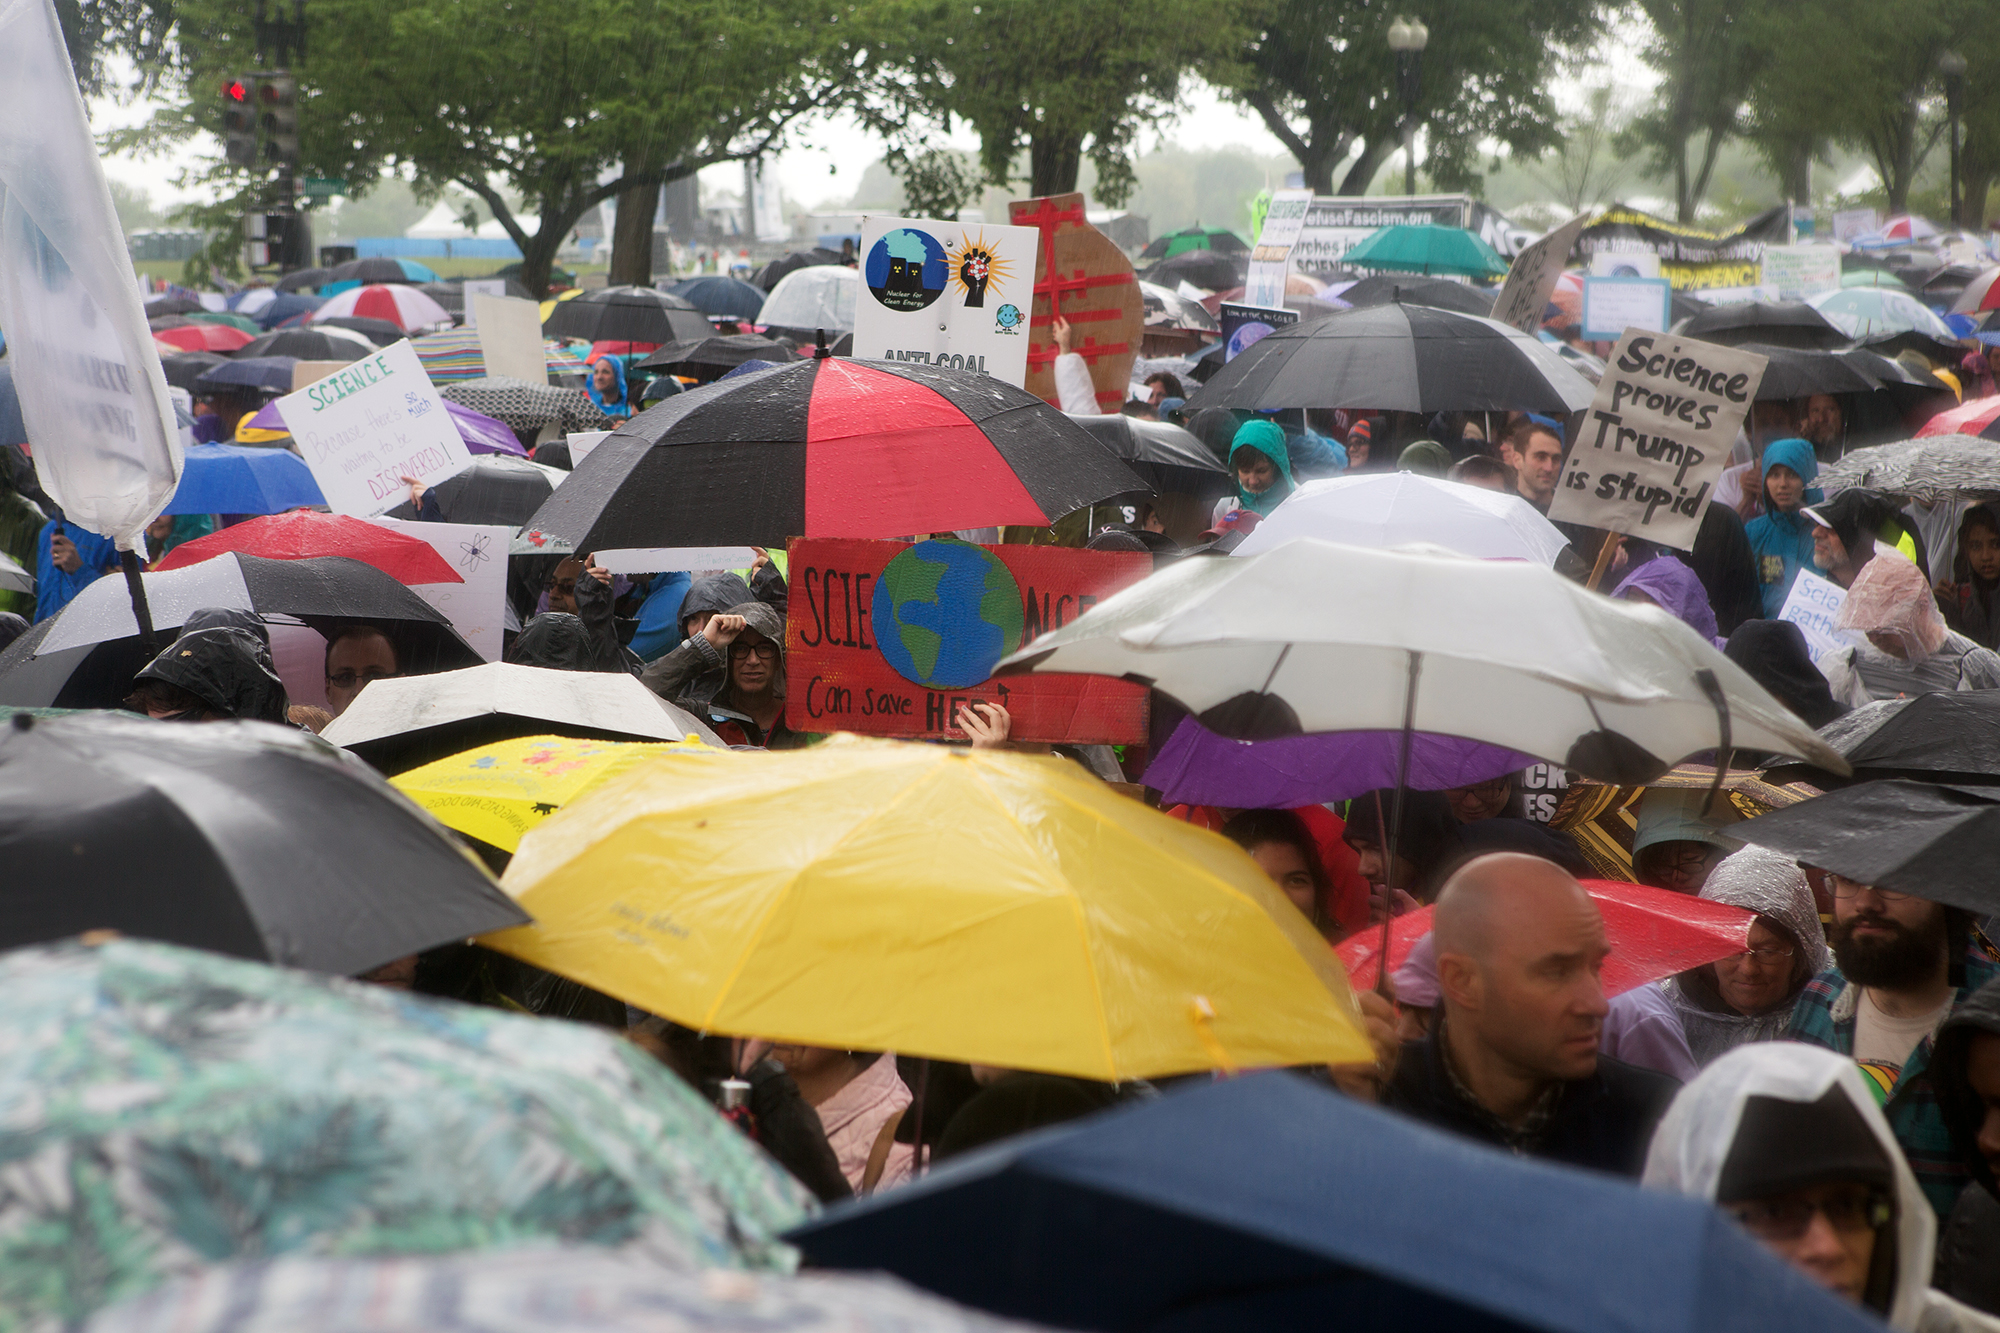 Umbrellas on a rainy day at the Science March in Washington, D.C.